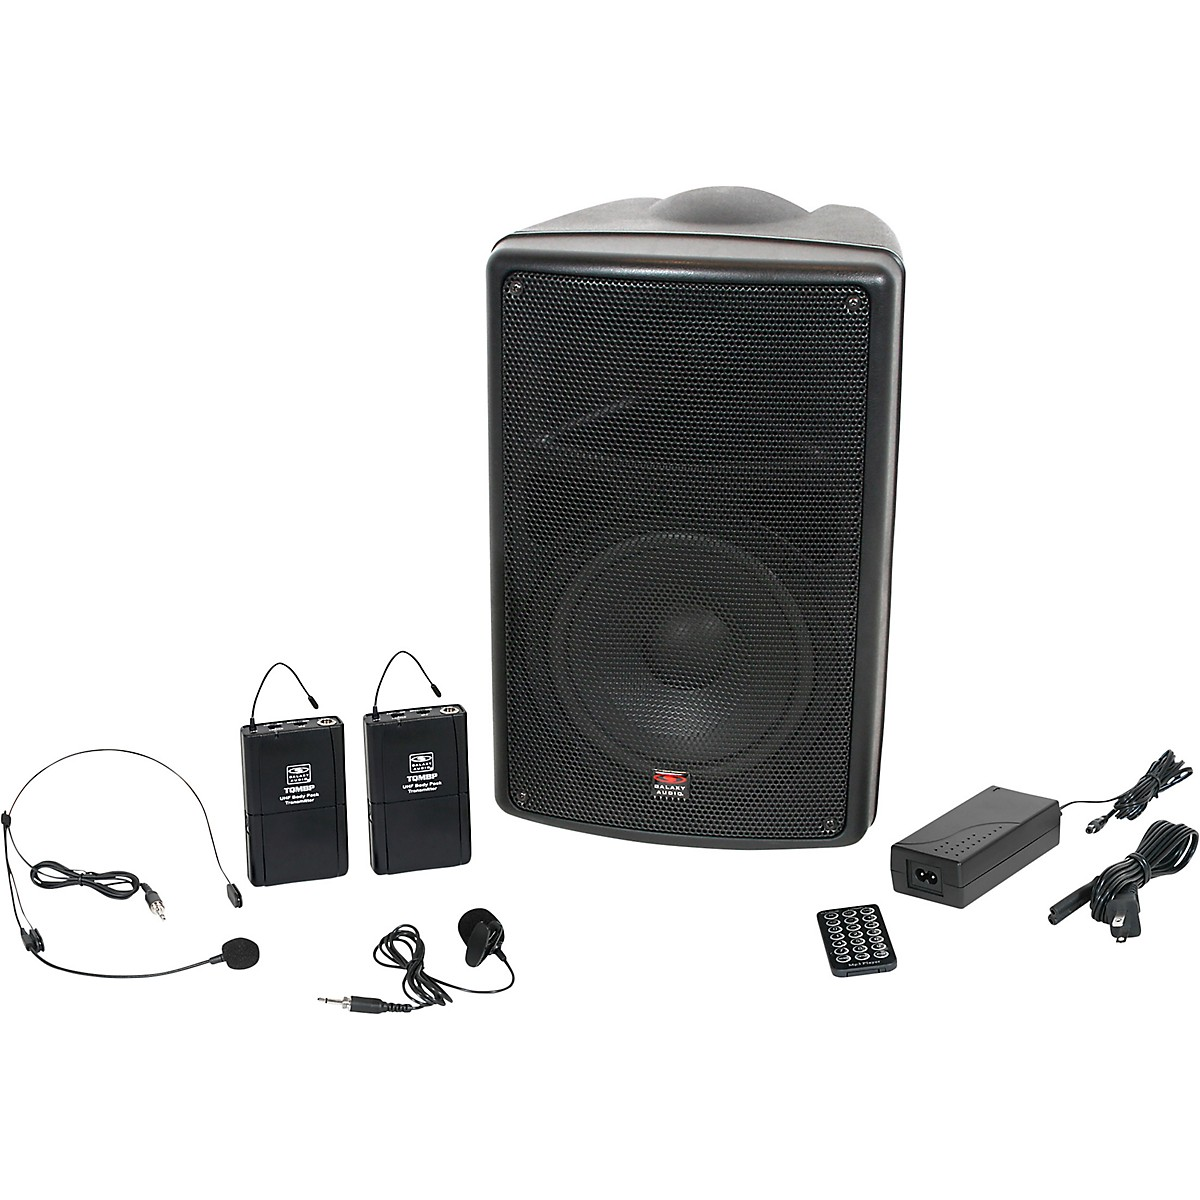 Galaxy Audio TQ8-24SVN Traveler Quest 8 TQ8 Battery Powered PA Speaker System With Two Receivers, One Headset, and One Lavalier Microphone